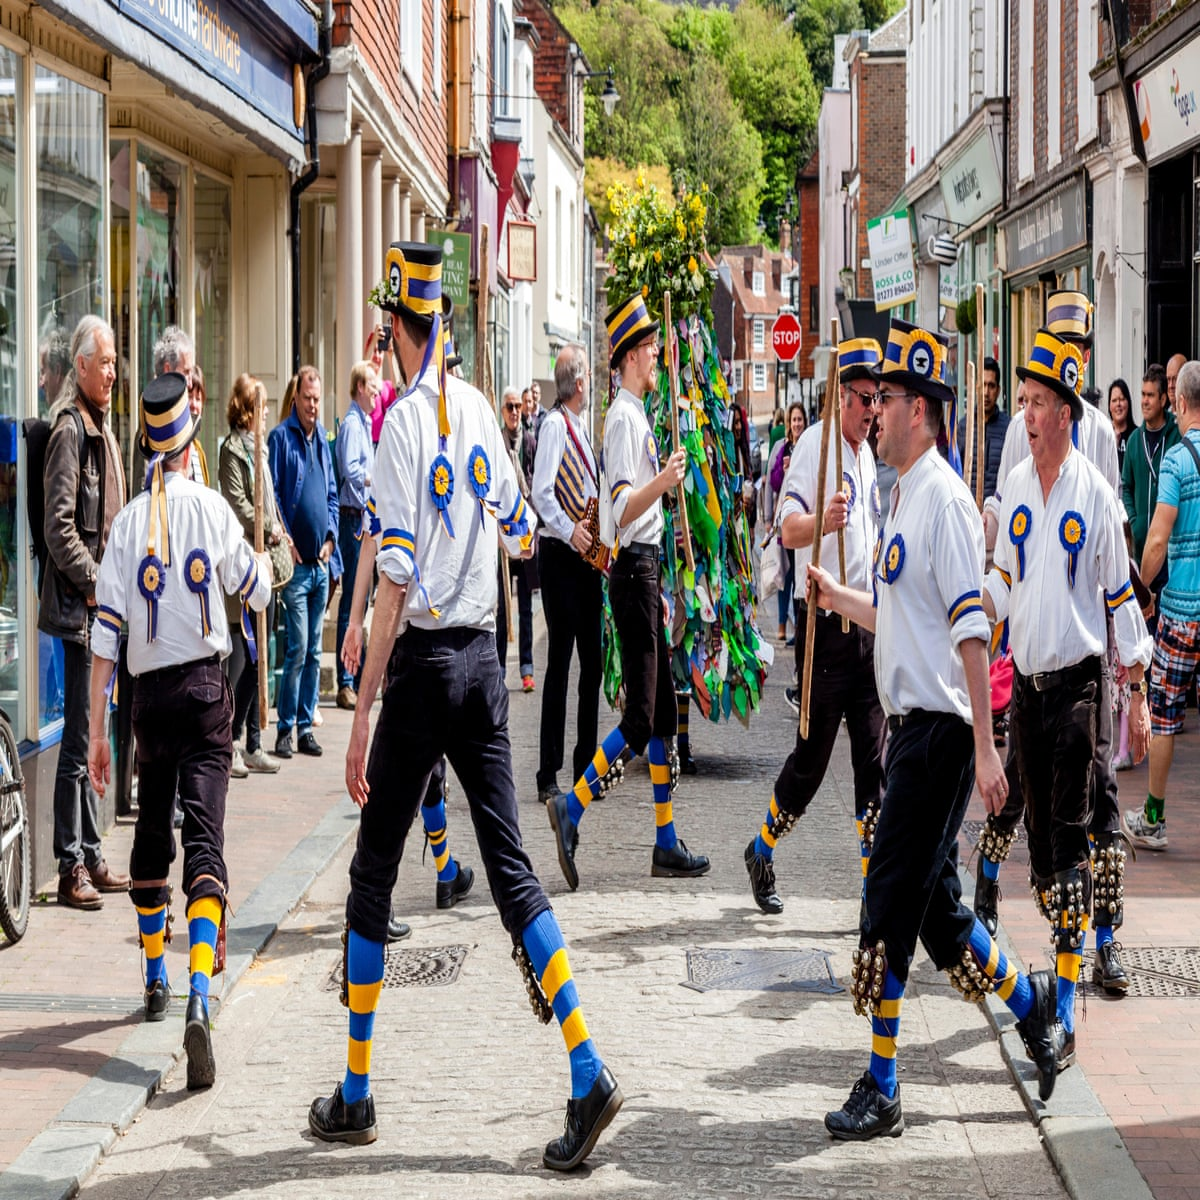 e2780b171 Maypole sales are up as May Day celebrations come back into style ...